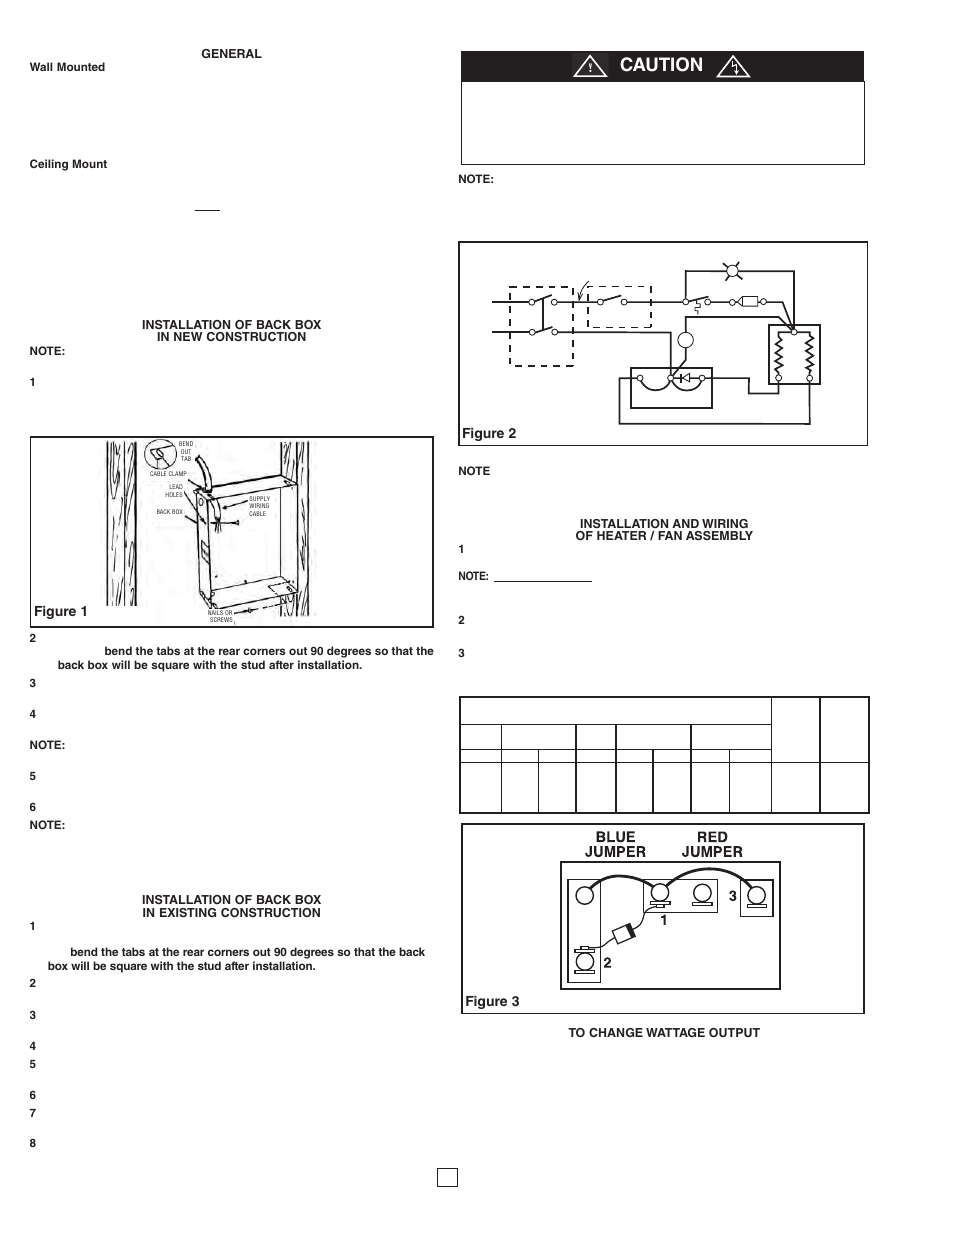 Wattage Caution Figure 1 Qmark Cra Series Residential Fan New Construction Wiring Diagrams Forced Zonal Wall Heaters User Manual Page 2 12